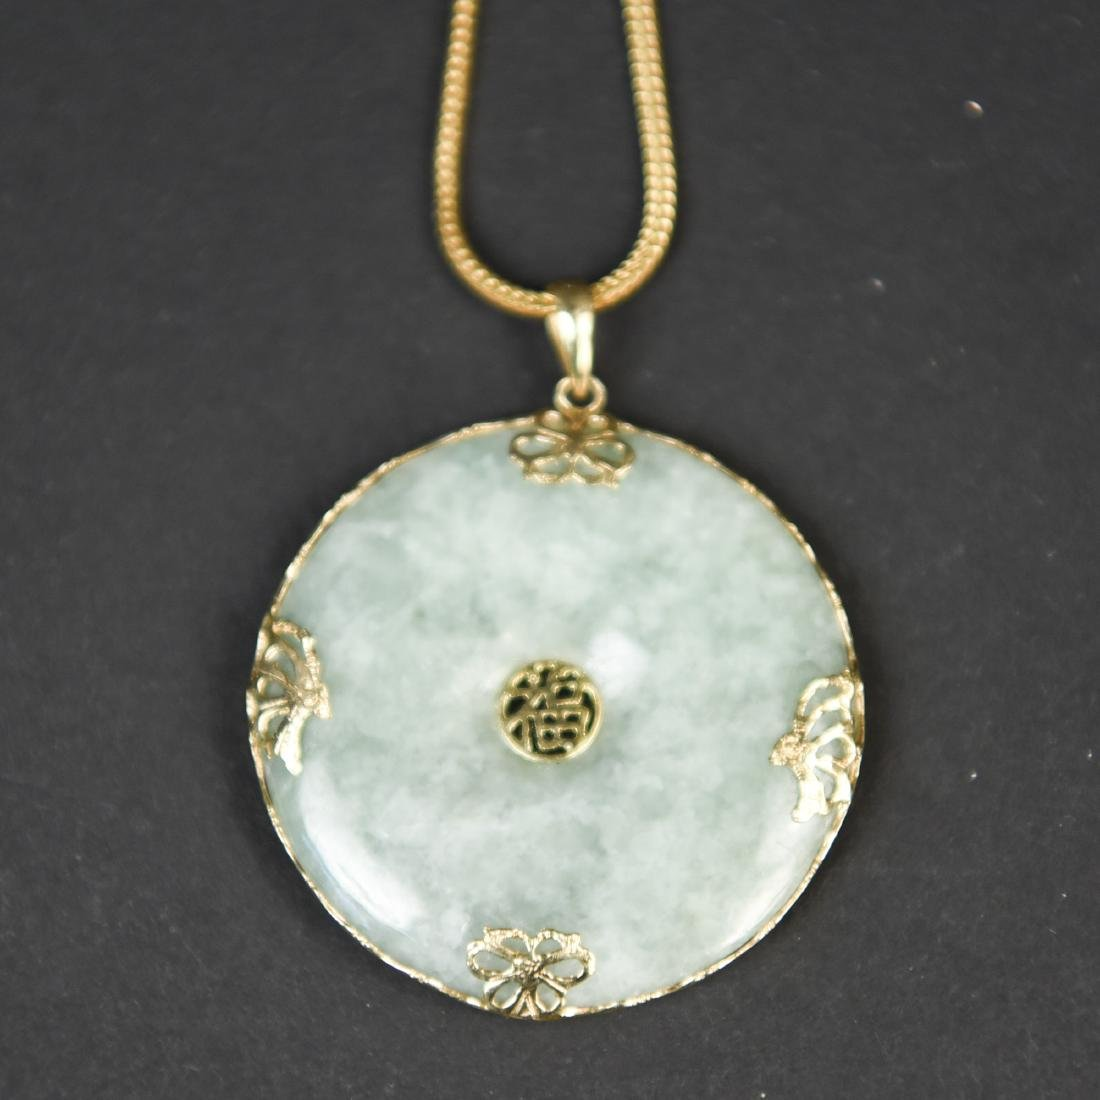 CHINESE JADE AND GOLD BI-DISC NECKLACE - 4